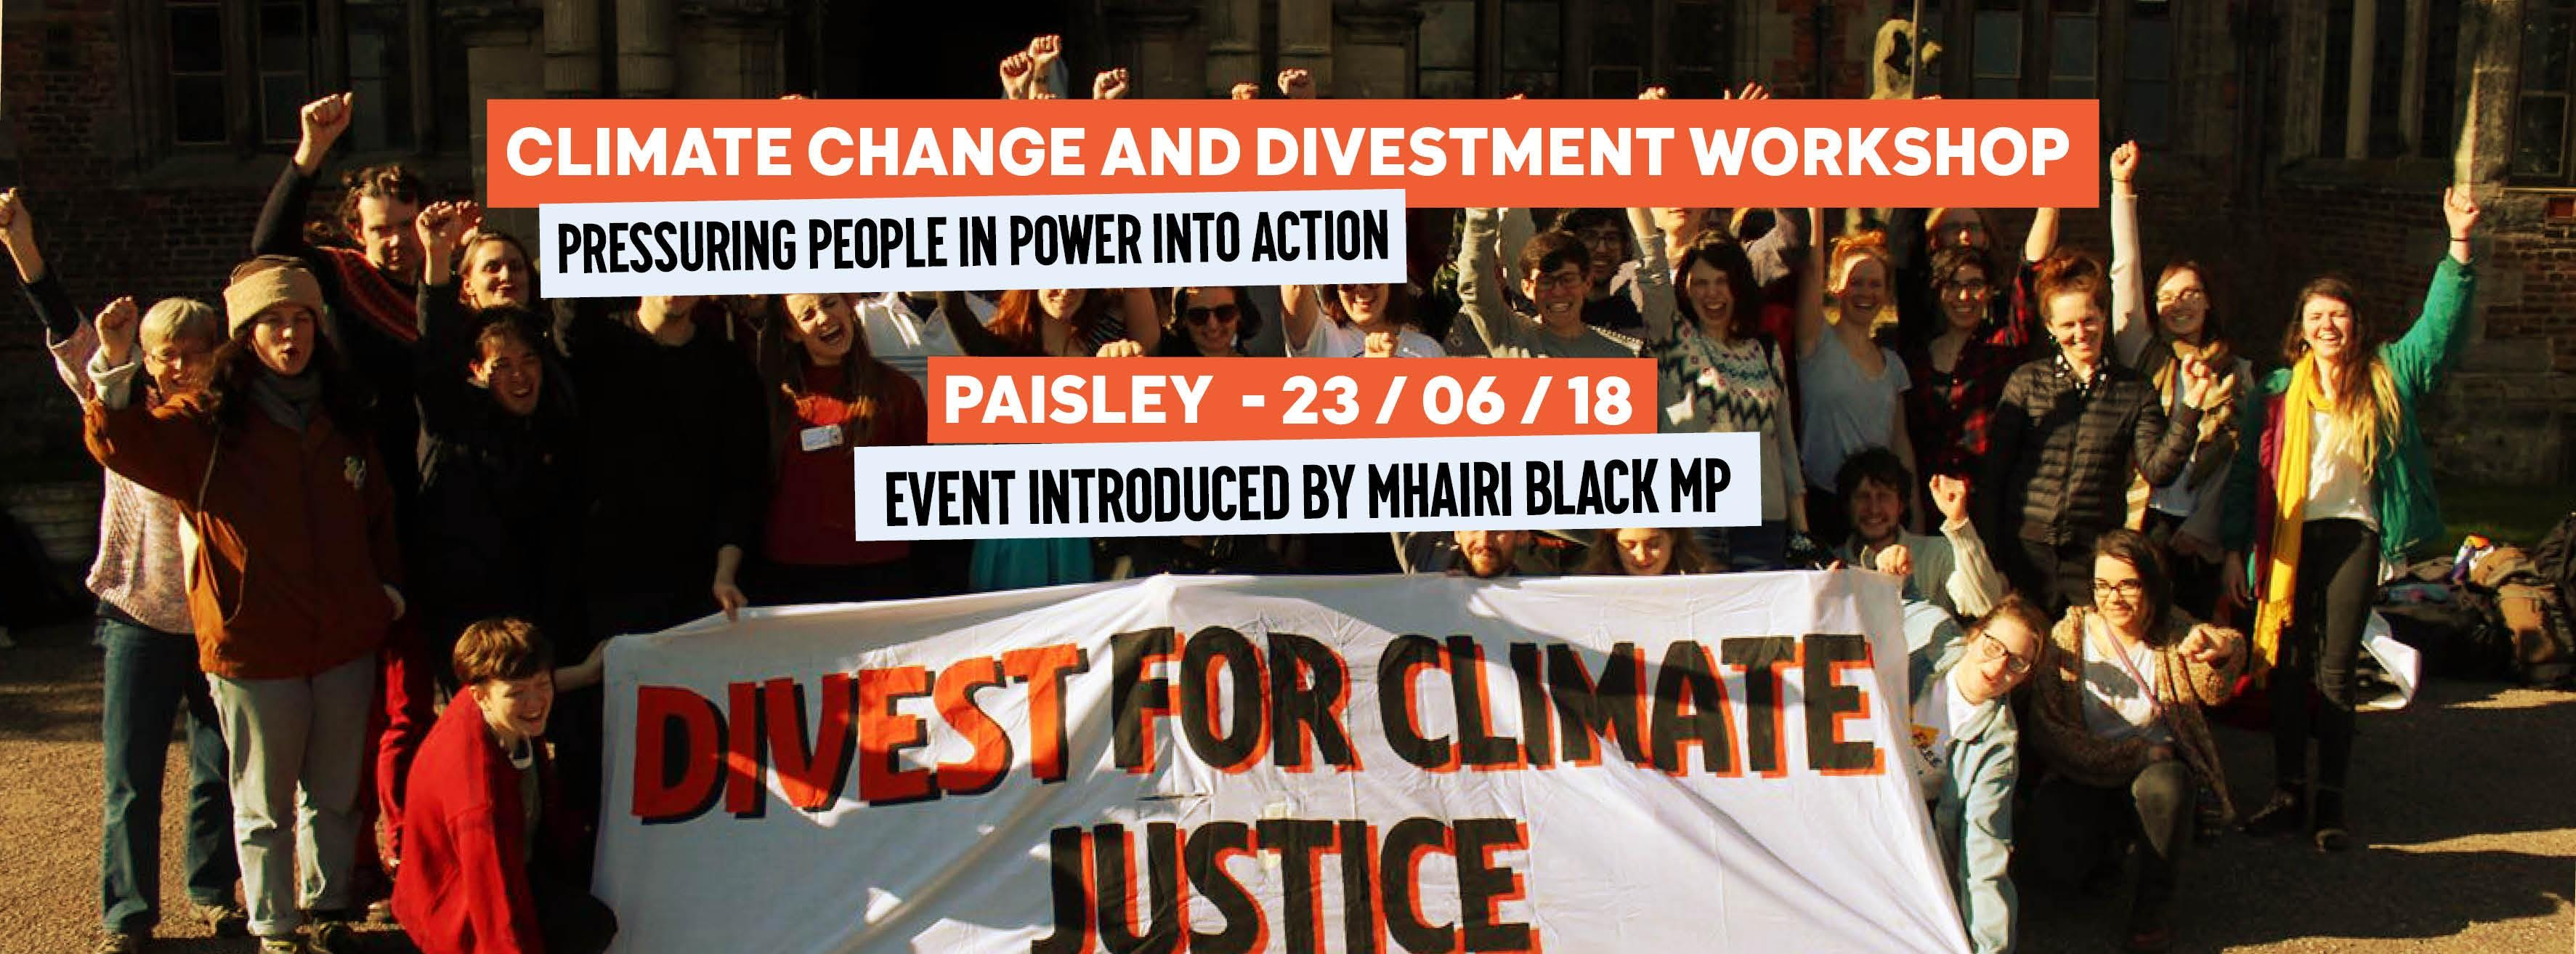 Climate Change & Divestment - Paisley Skill S